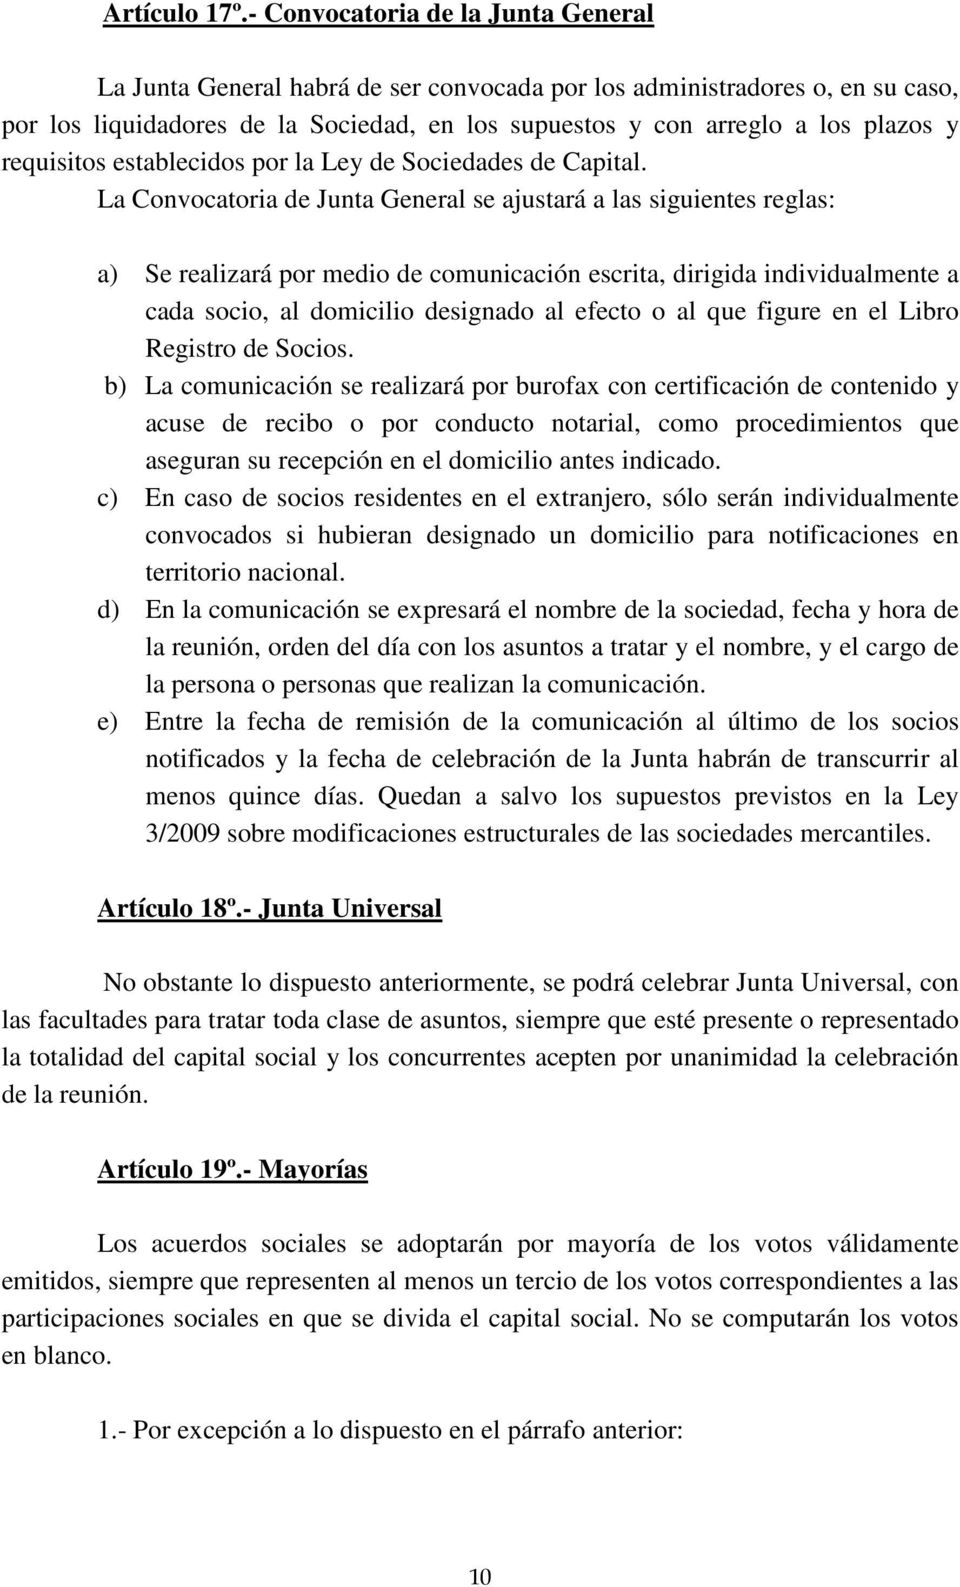 requisitos establecidos por la Ley de Sociedades de Capital.